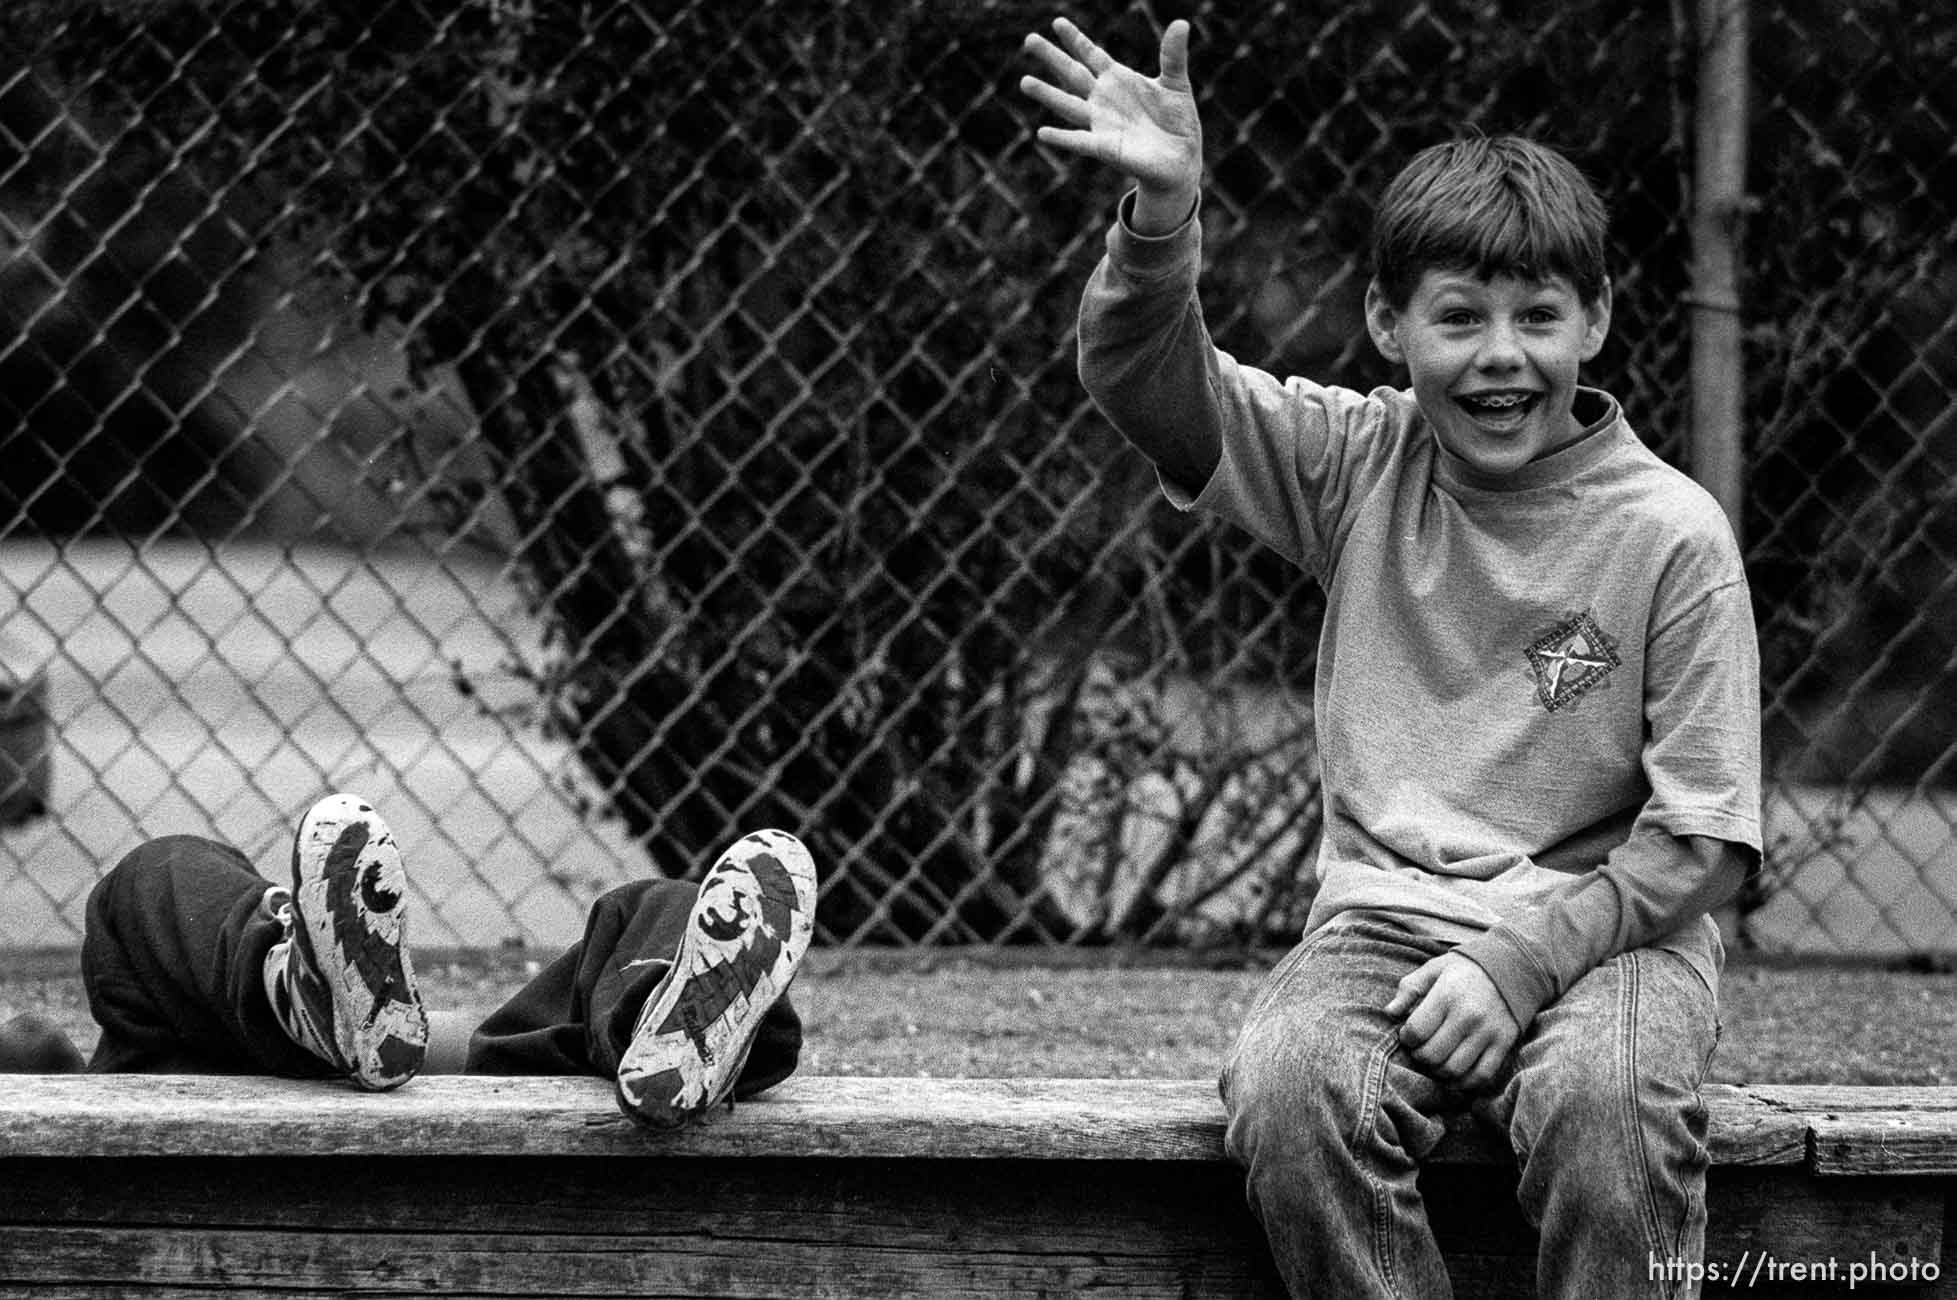 Kids in school P.E. class on bench. one waving, the other has fallen.